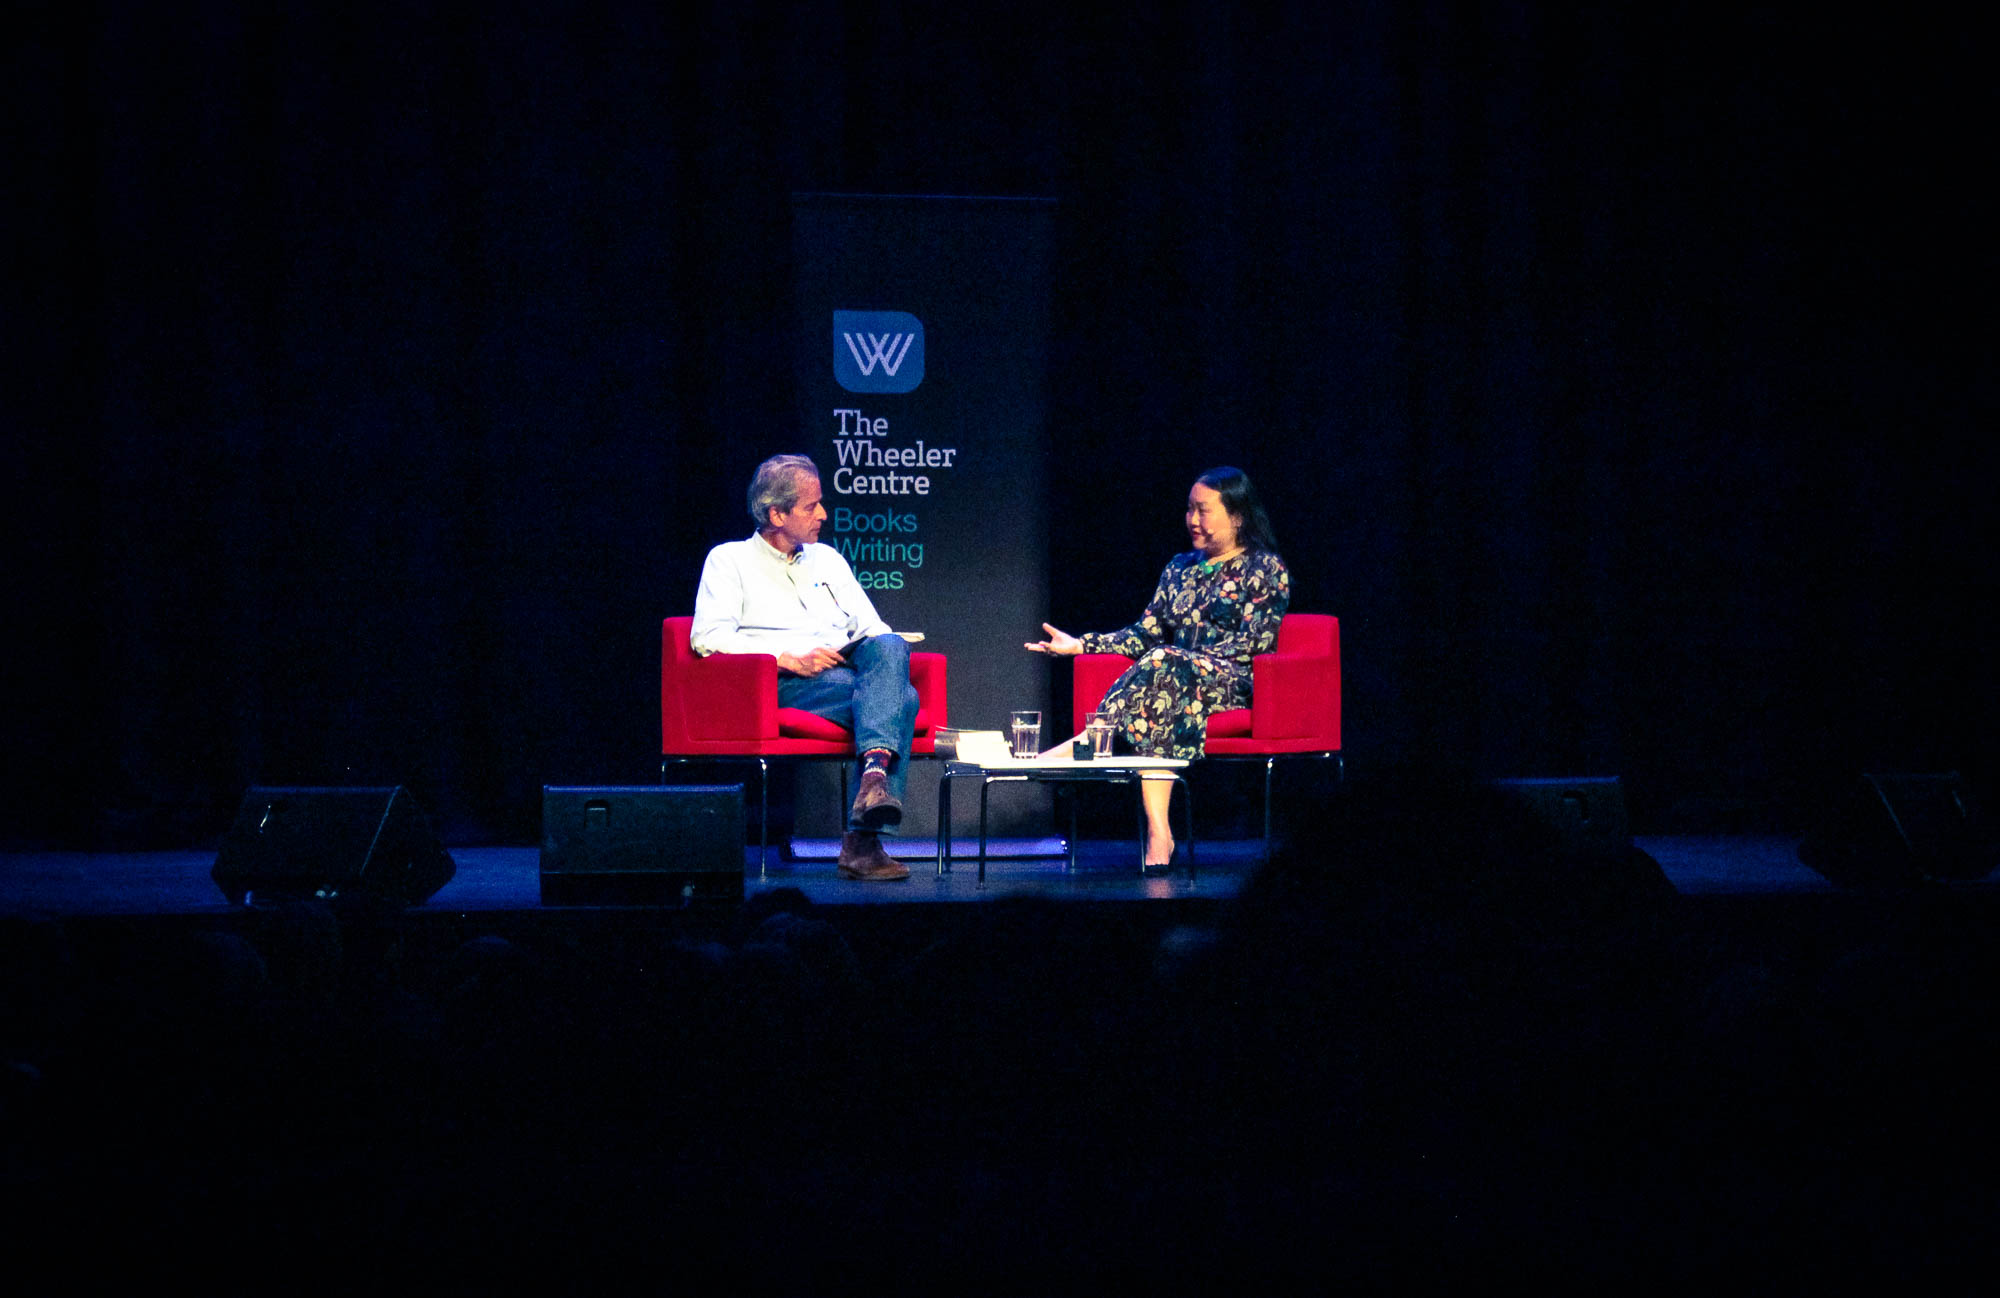 Jason Steger and Hanya Yanagihara – on stage for the Wheeler Centre